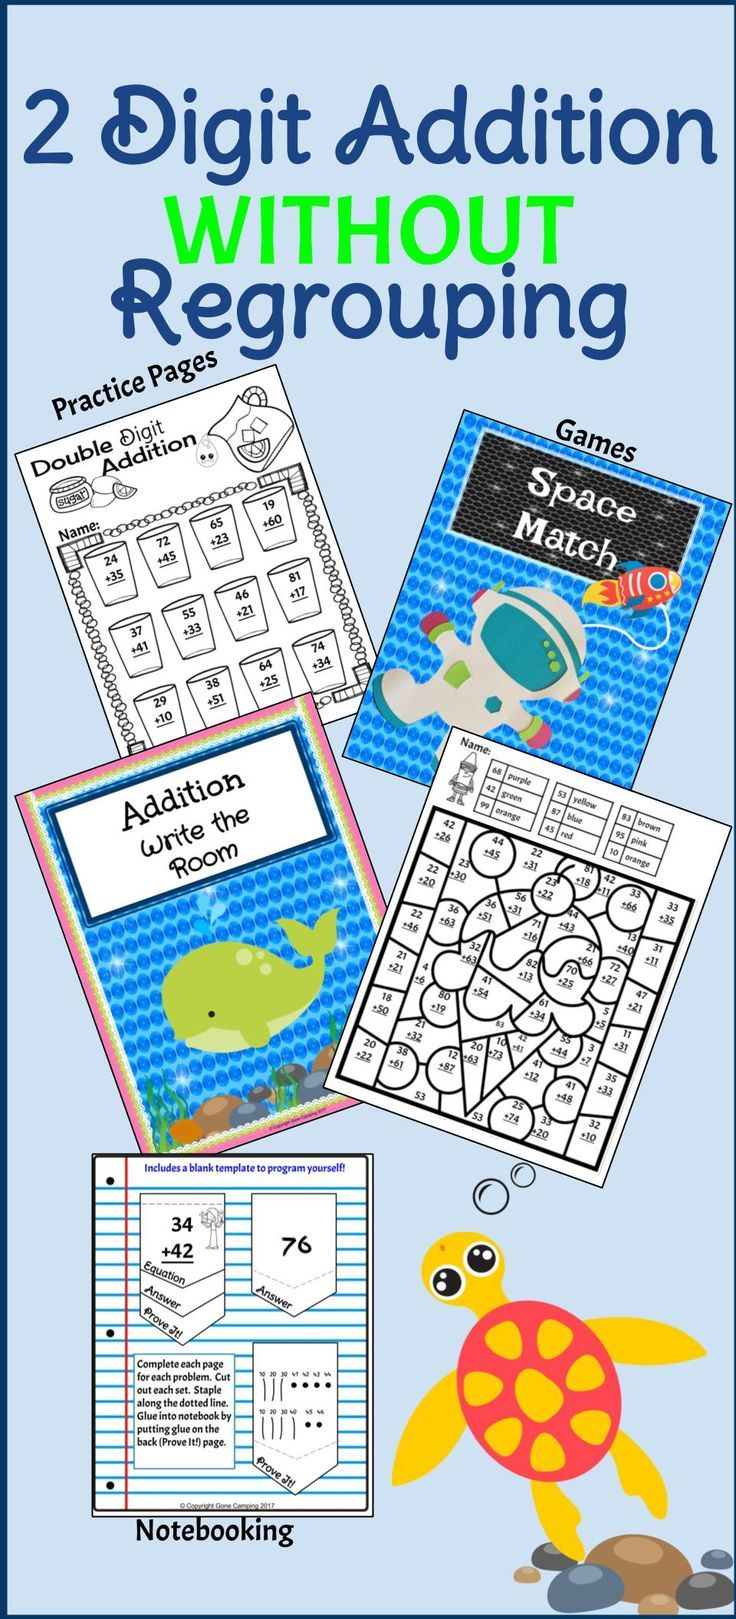 Introductory Price Only 9 00 That S 50 Off Only Through 6 29 It Is So Hard To Find 2 Dig Math Fluency Activities Elementary School Math Regrouping How to price addition